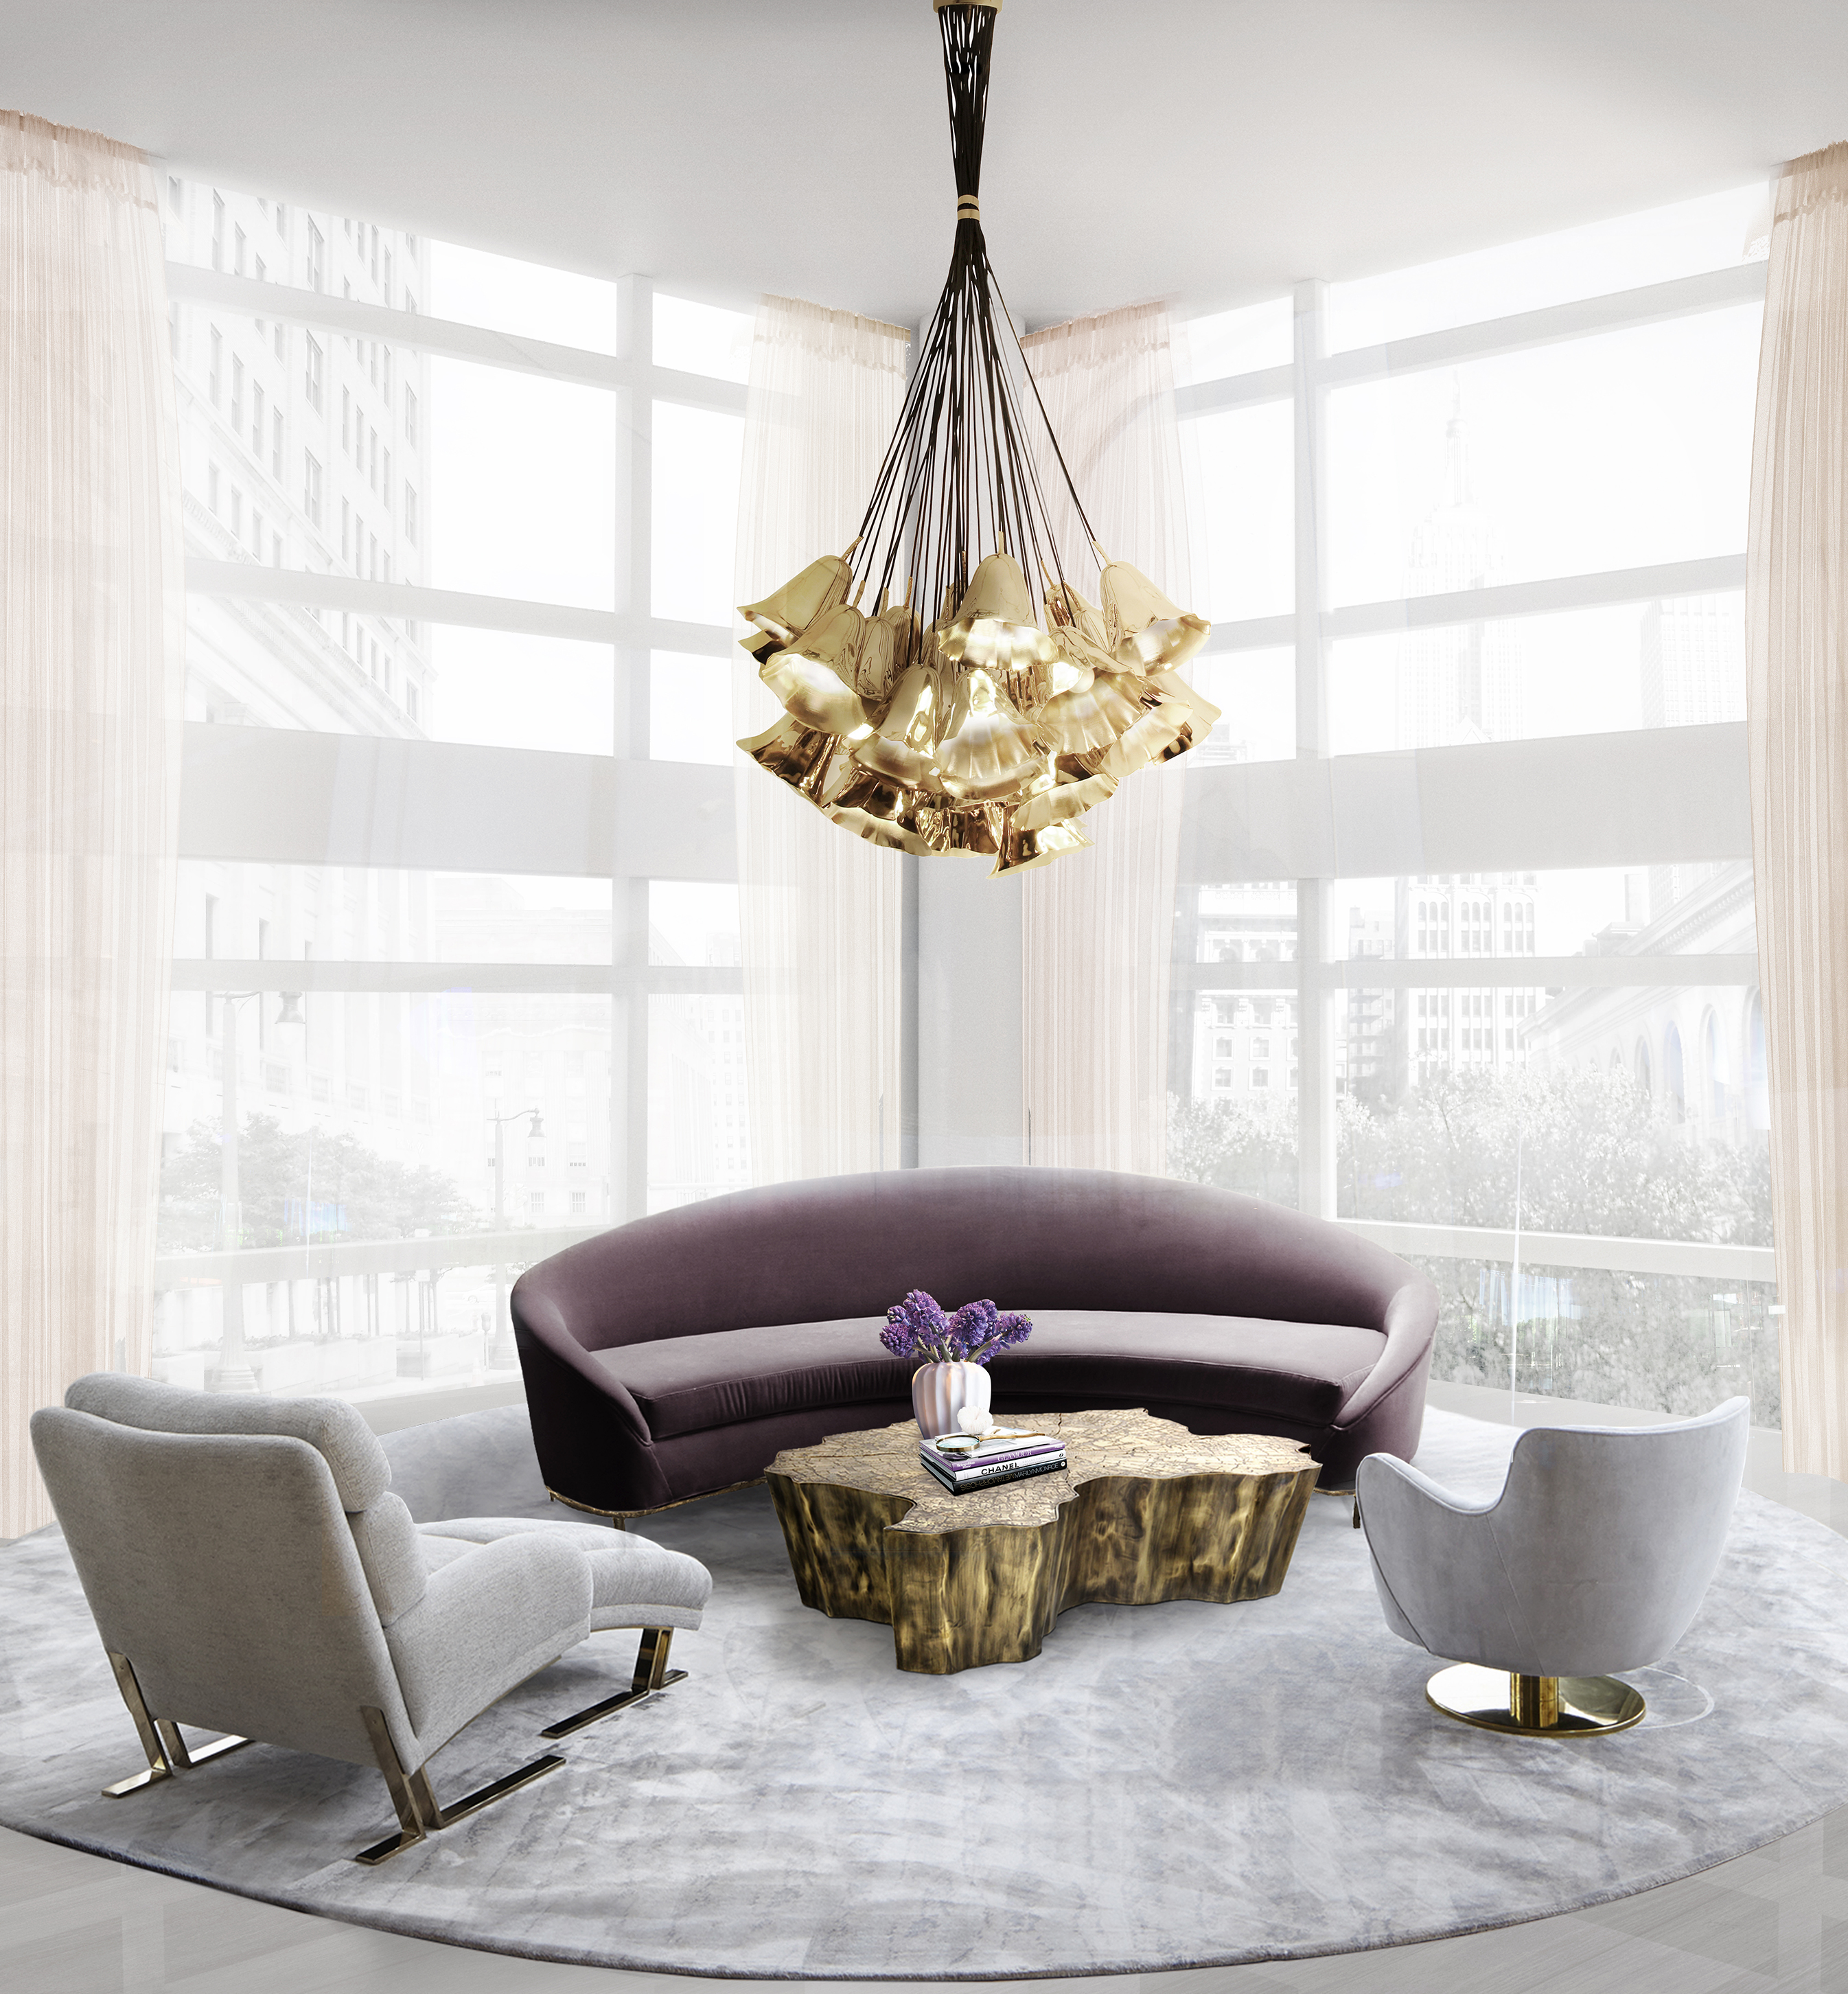 Modern Suspension Lamps Top 10 For Your Home Decor